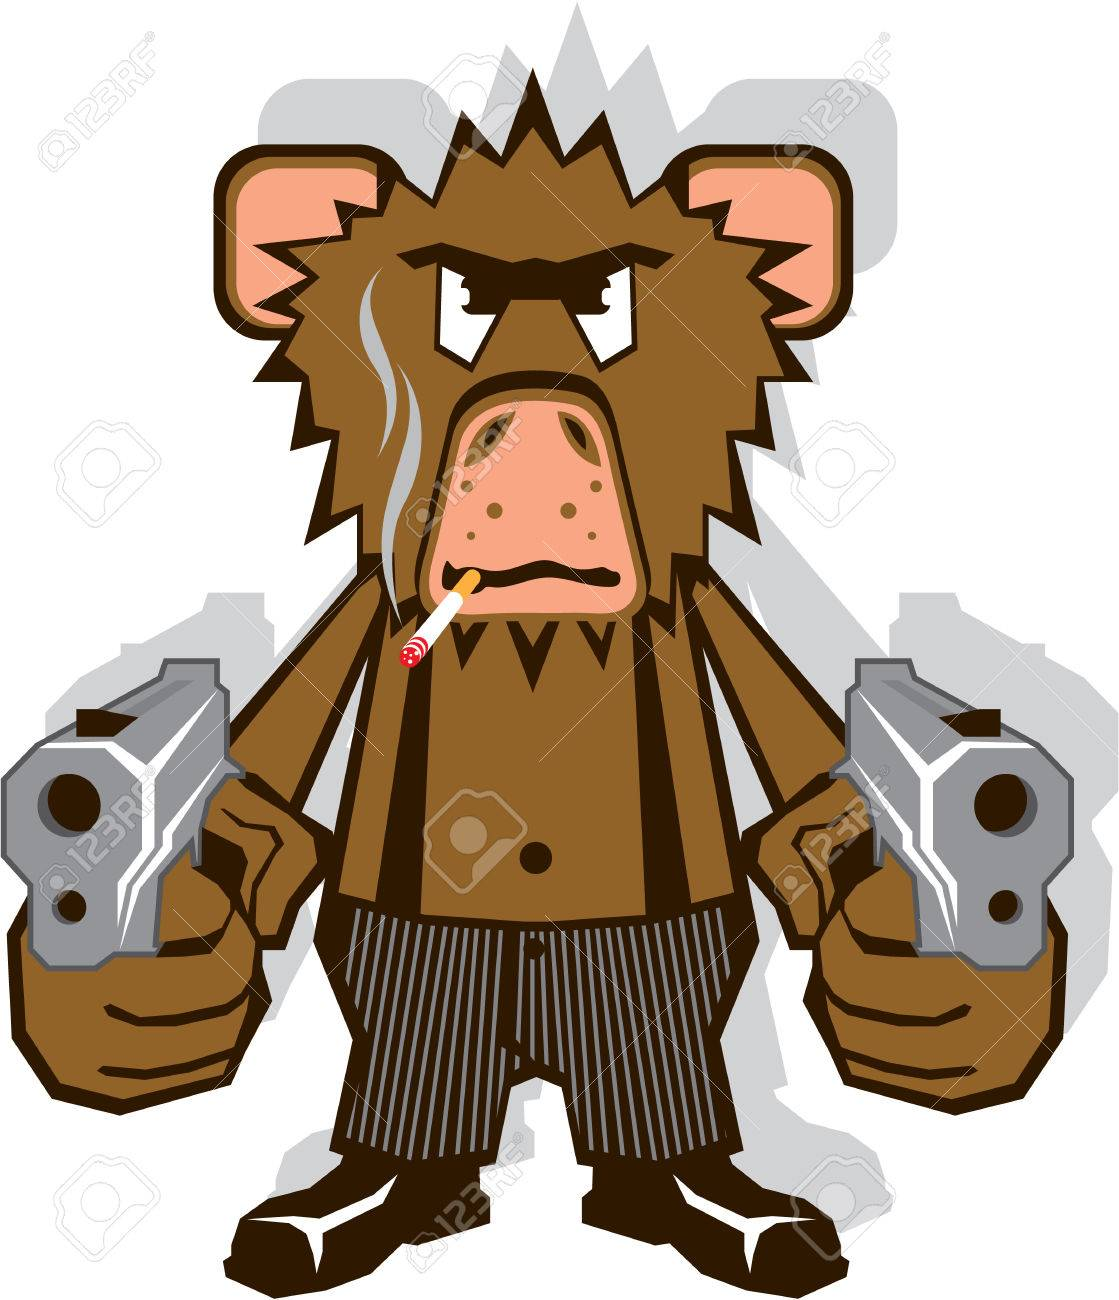 hight resolution of gangsta monkey vector illustration clip art eps image stock vector 69634813